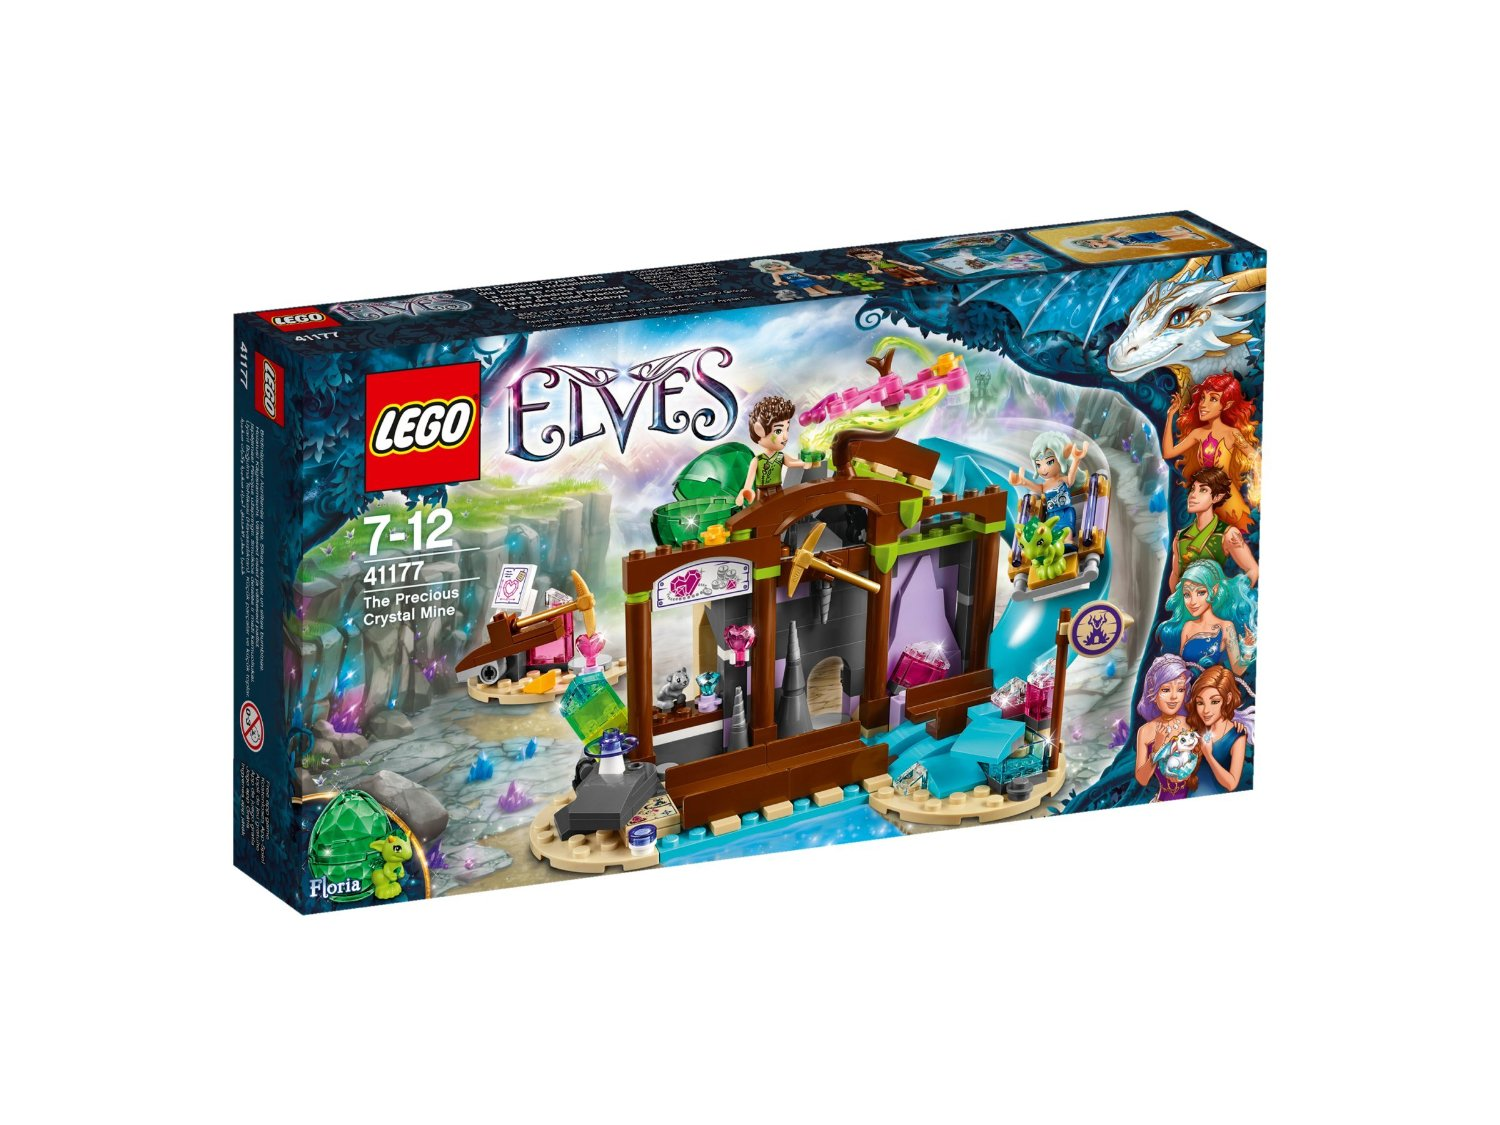 Lego Elves 2016 ! - Page 7 81dxi410